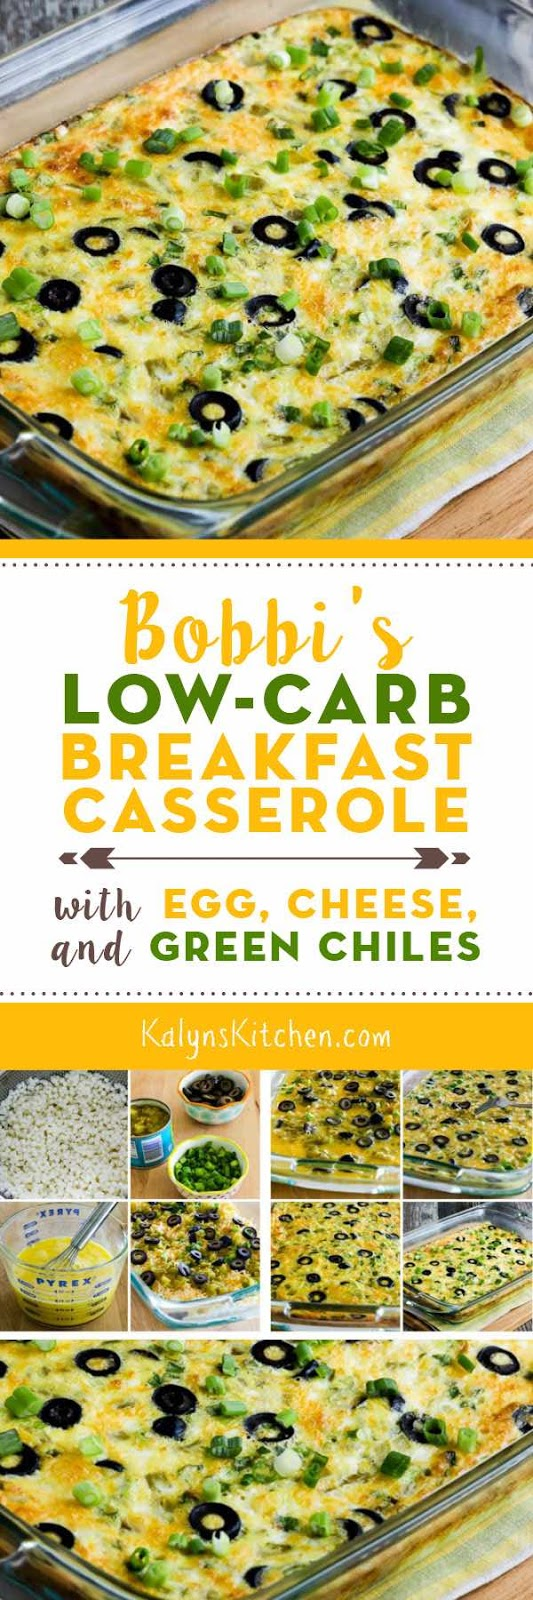 Bobbi's Low-Carb Breakfast Casserole with Egg, Cheese, and Green ...